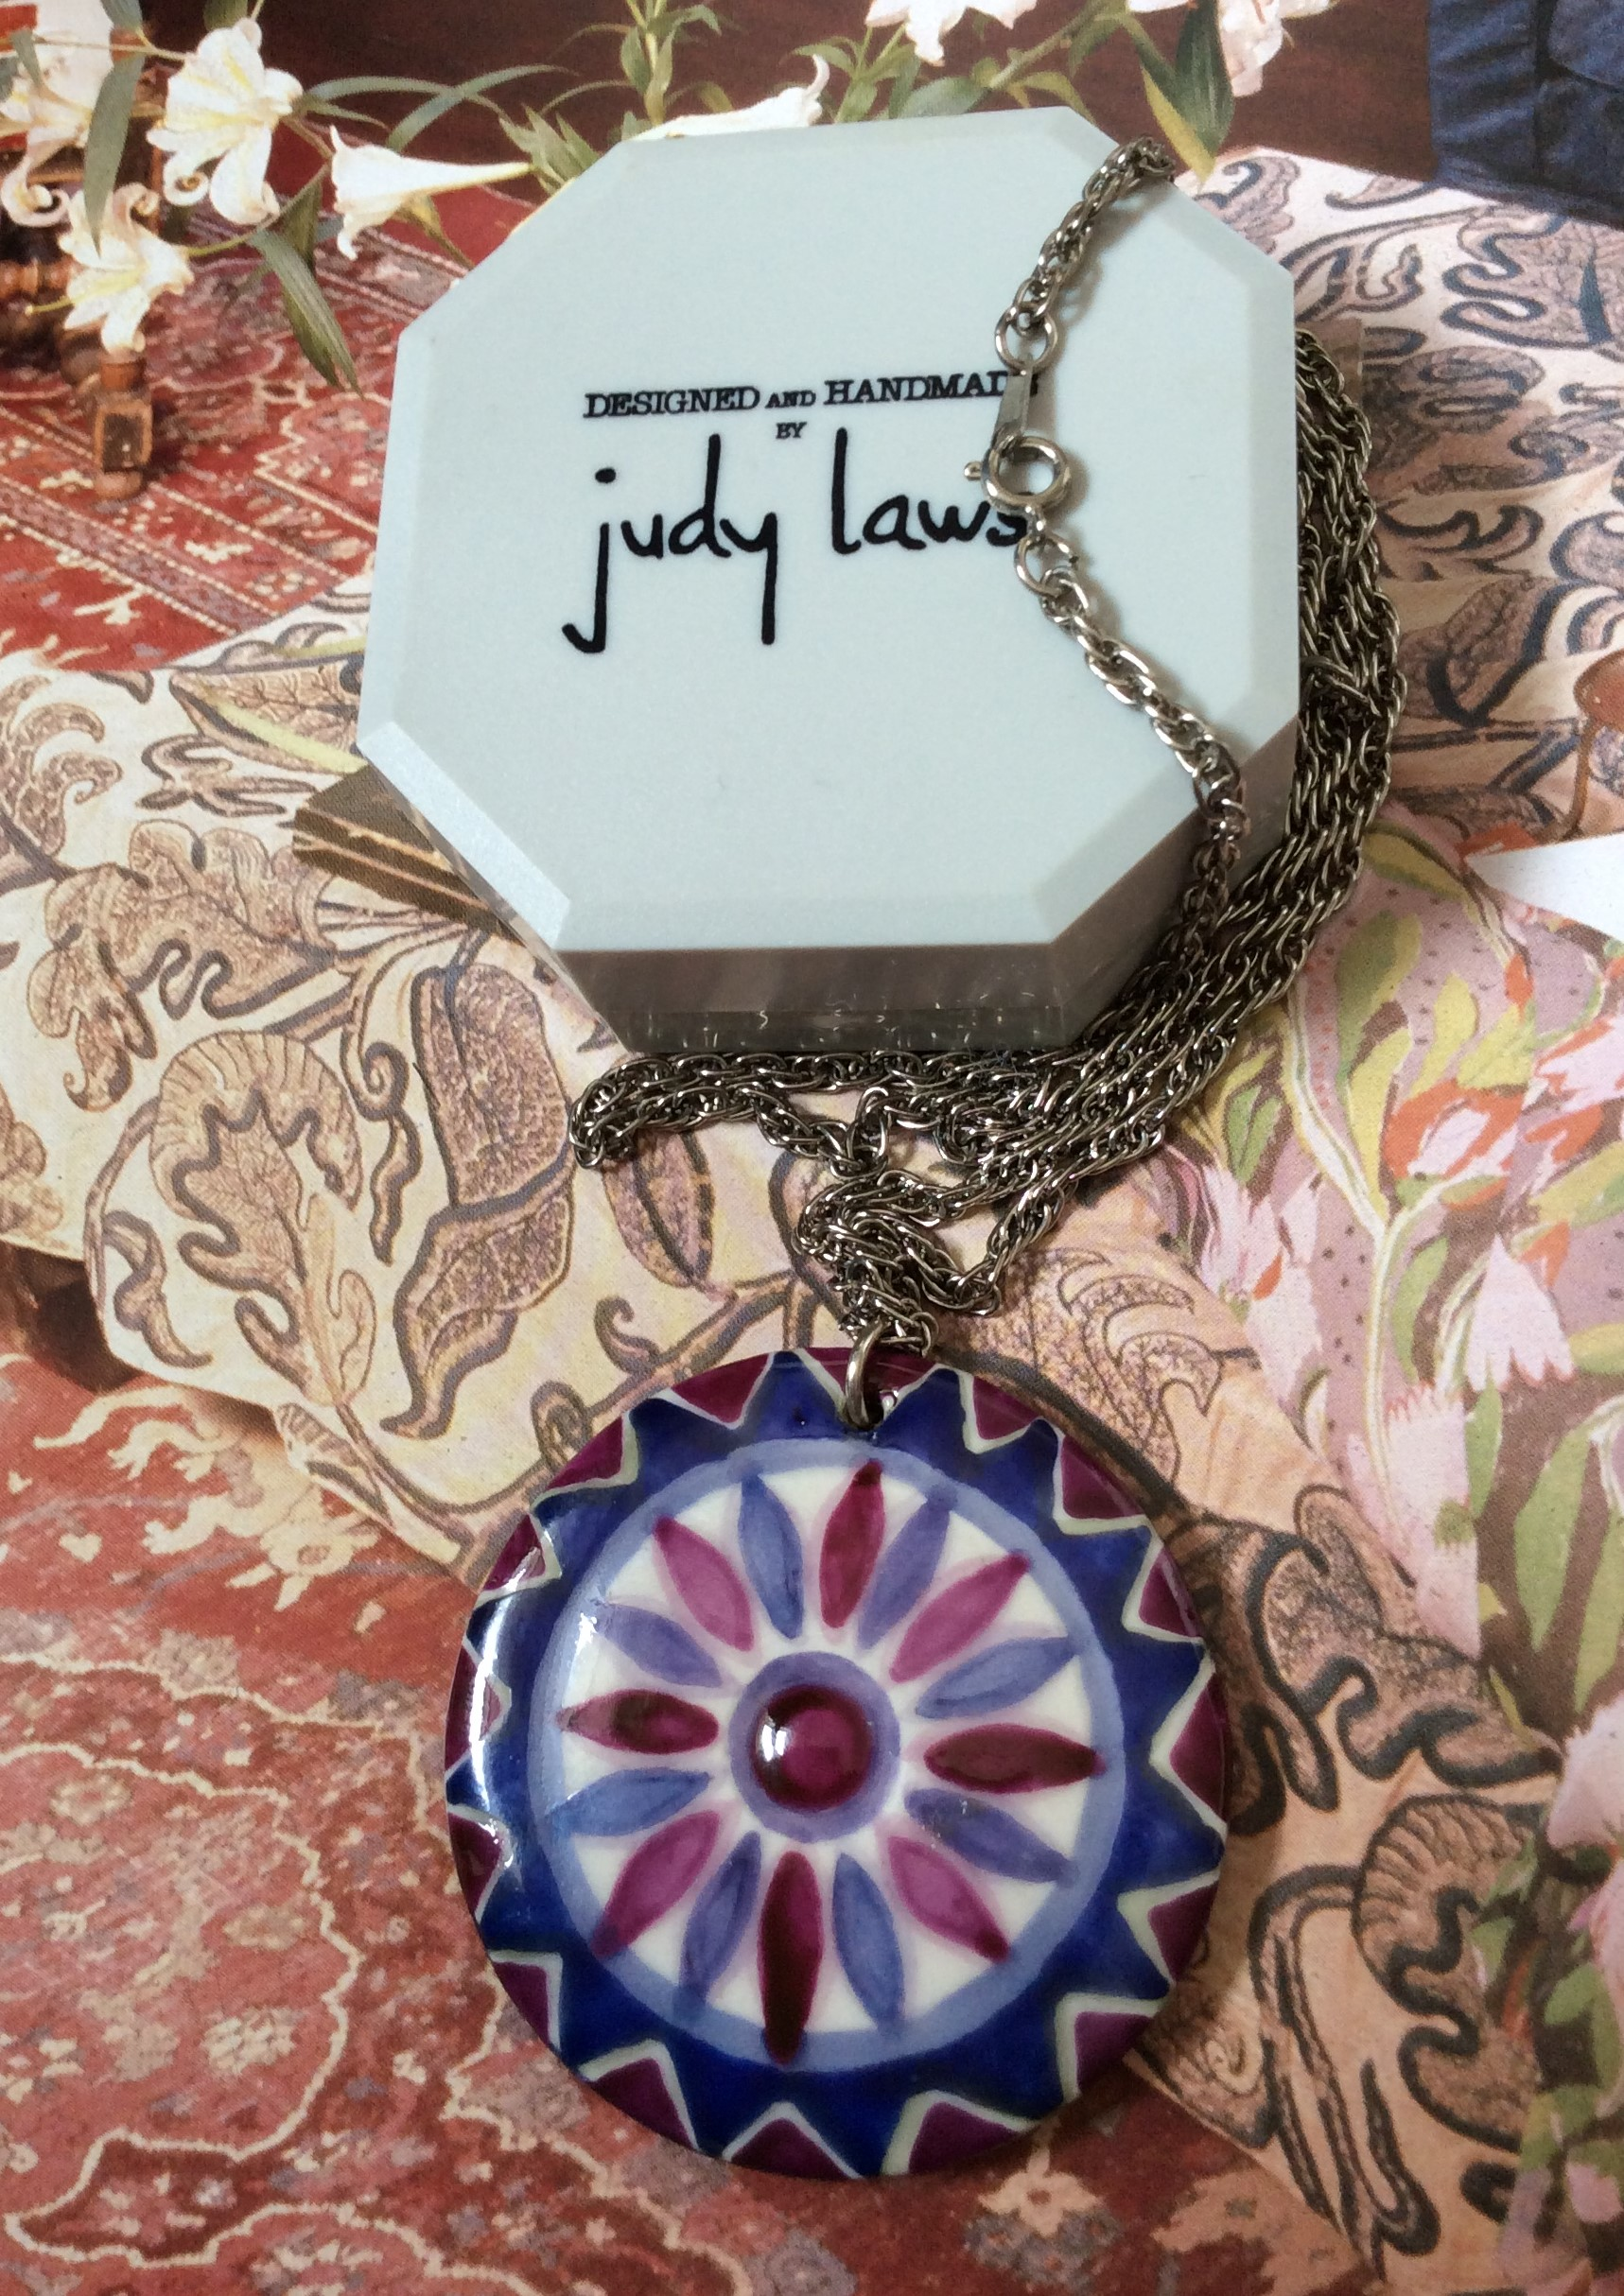 Retro 60/70s Judy Laws Handmade Ceramic and Leather Pendant and Chain